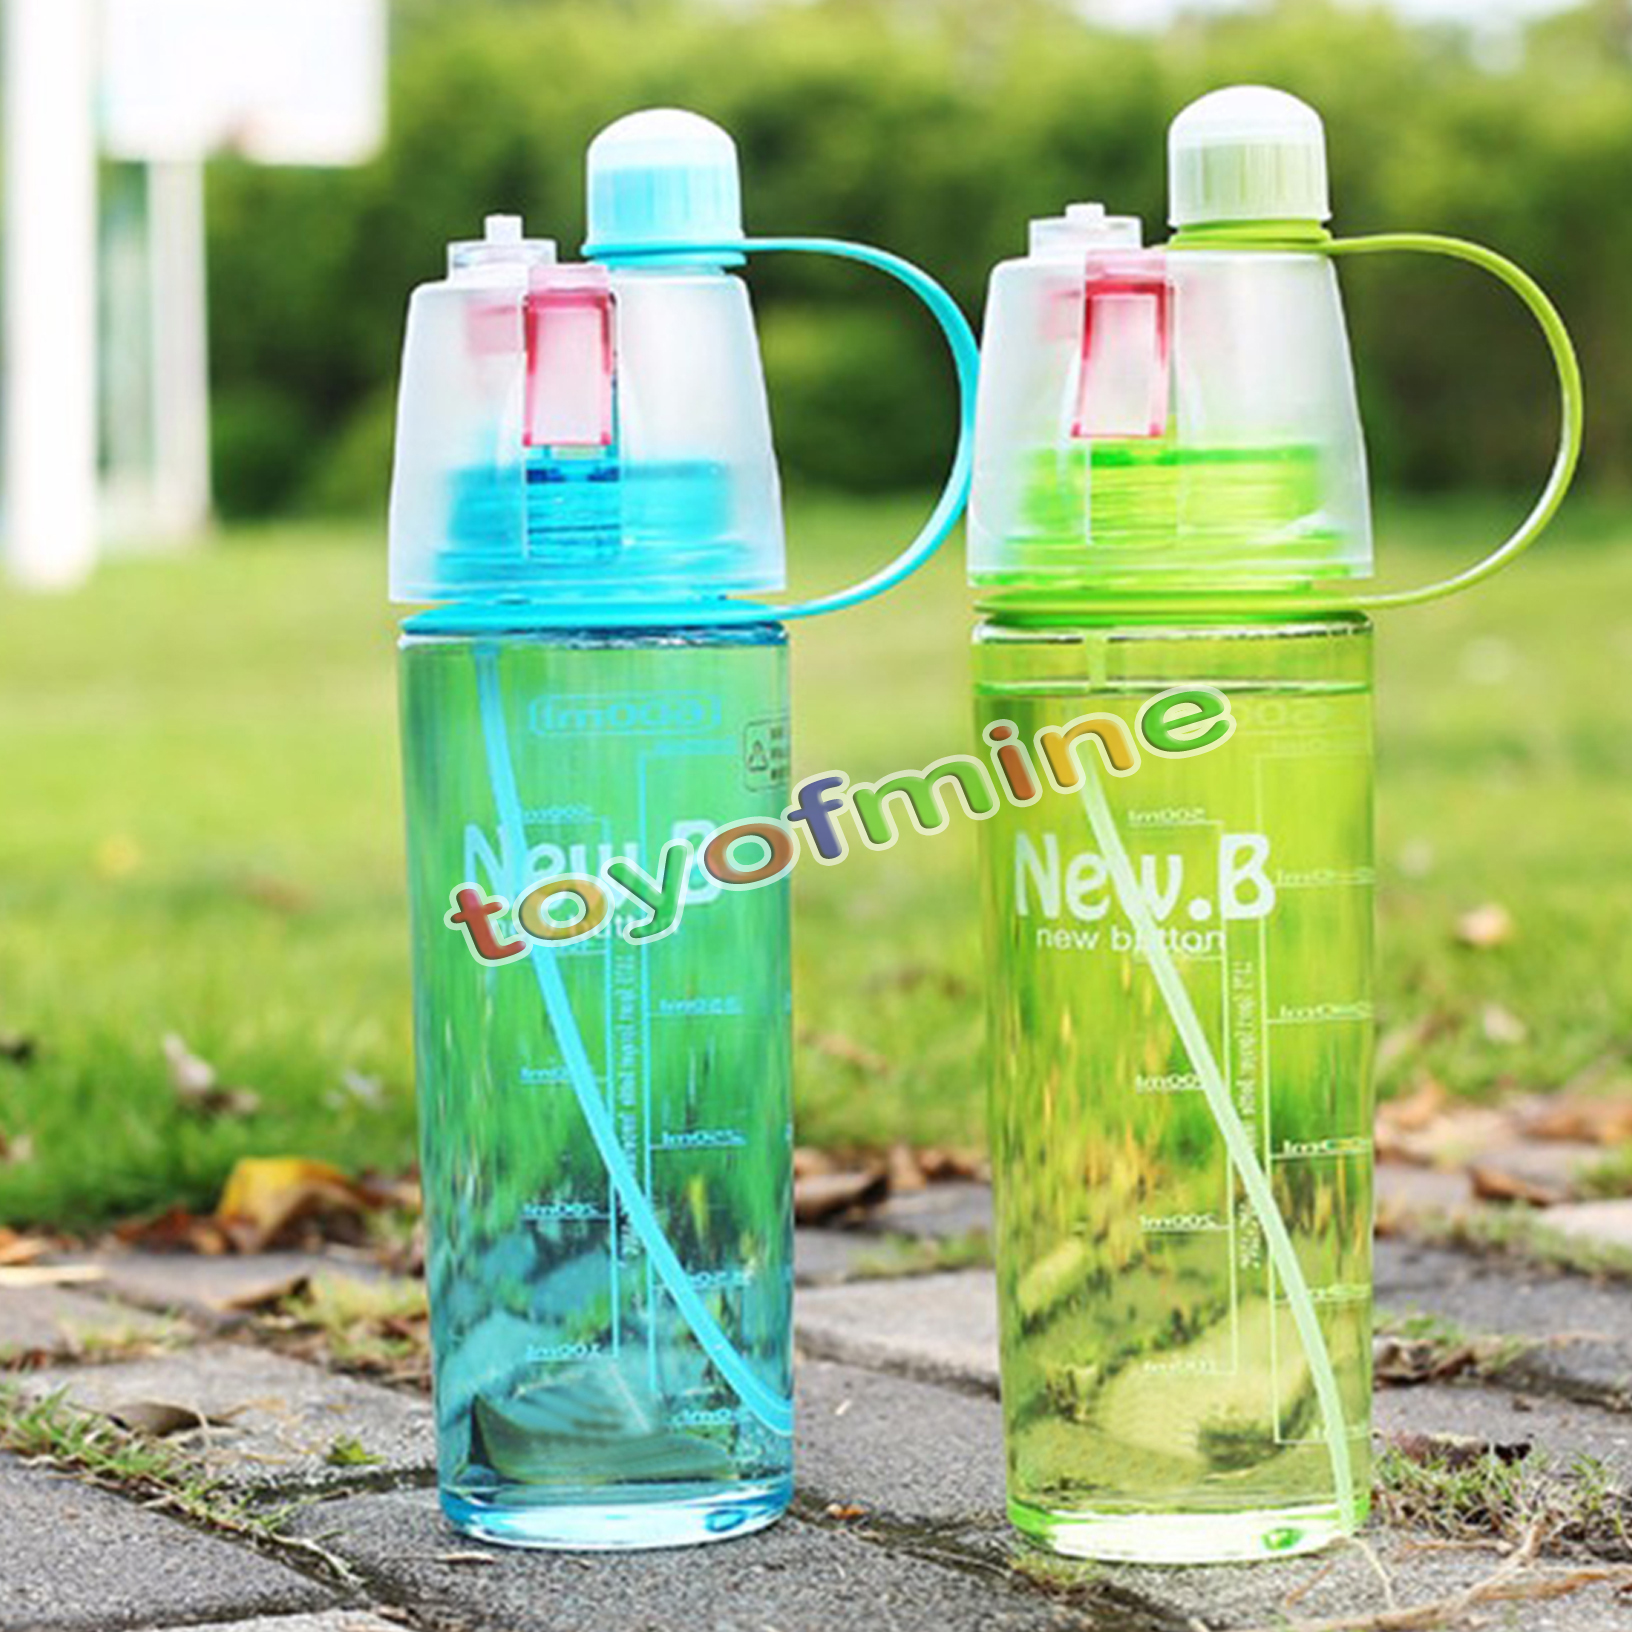 Water Bottle Uses: New Arrival Sports Spray Water Bottle Dual Use Bpa Free